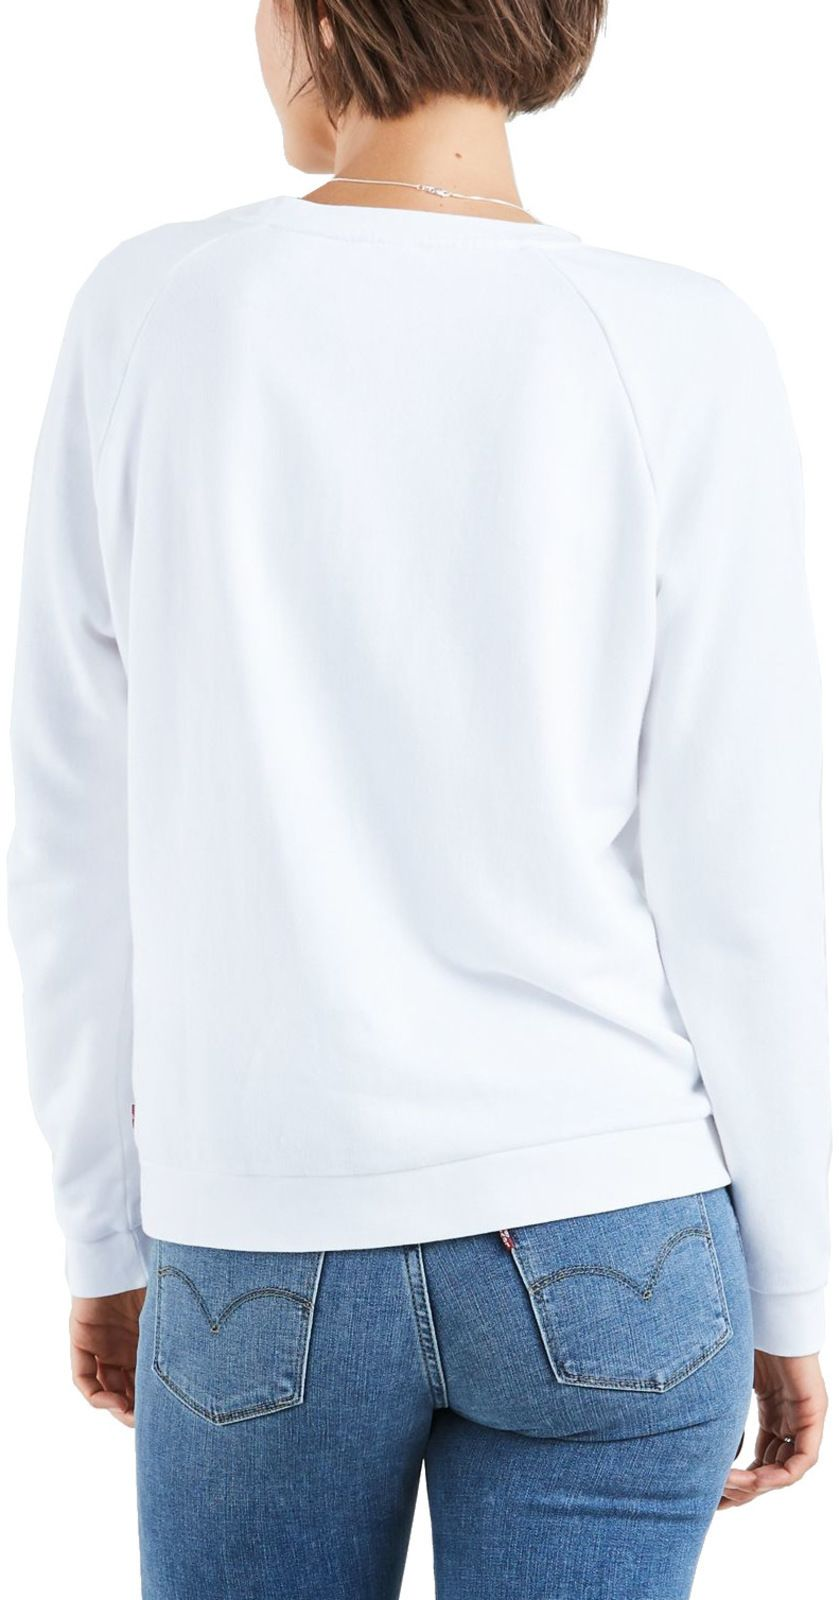 Levi's Women's Relaxed Graphic Sweatshirt White